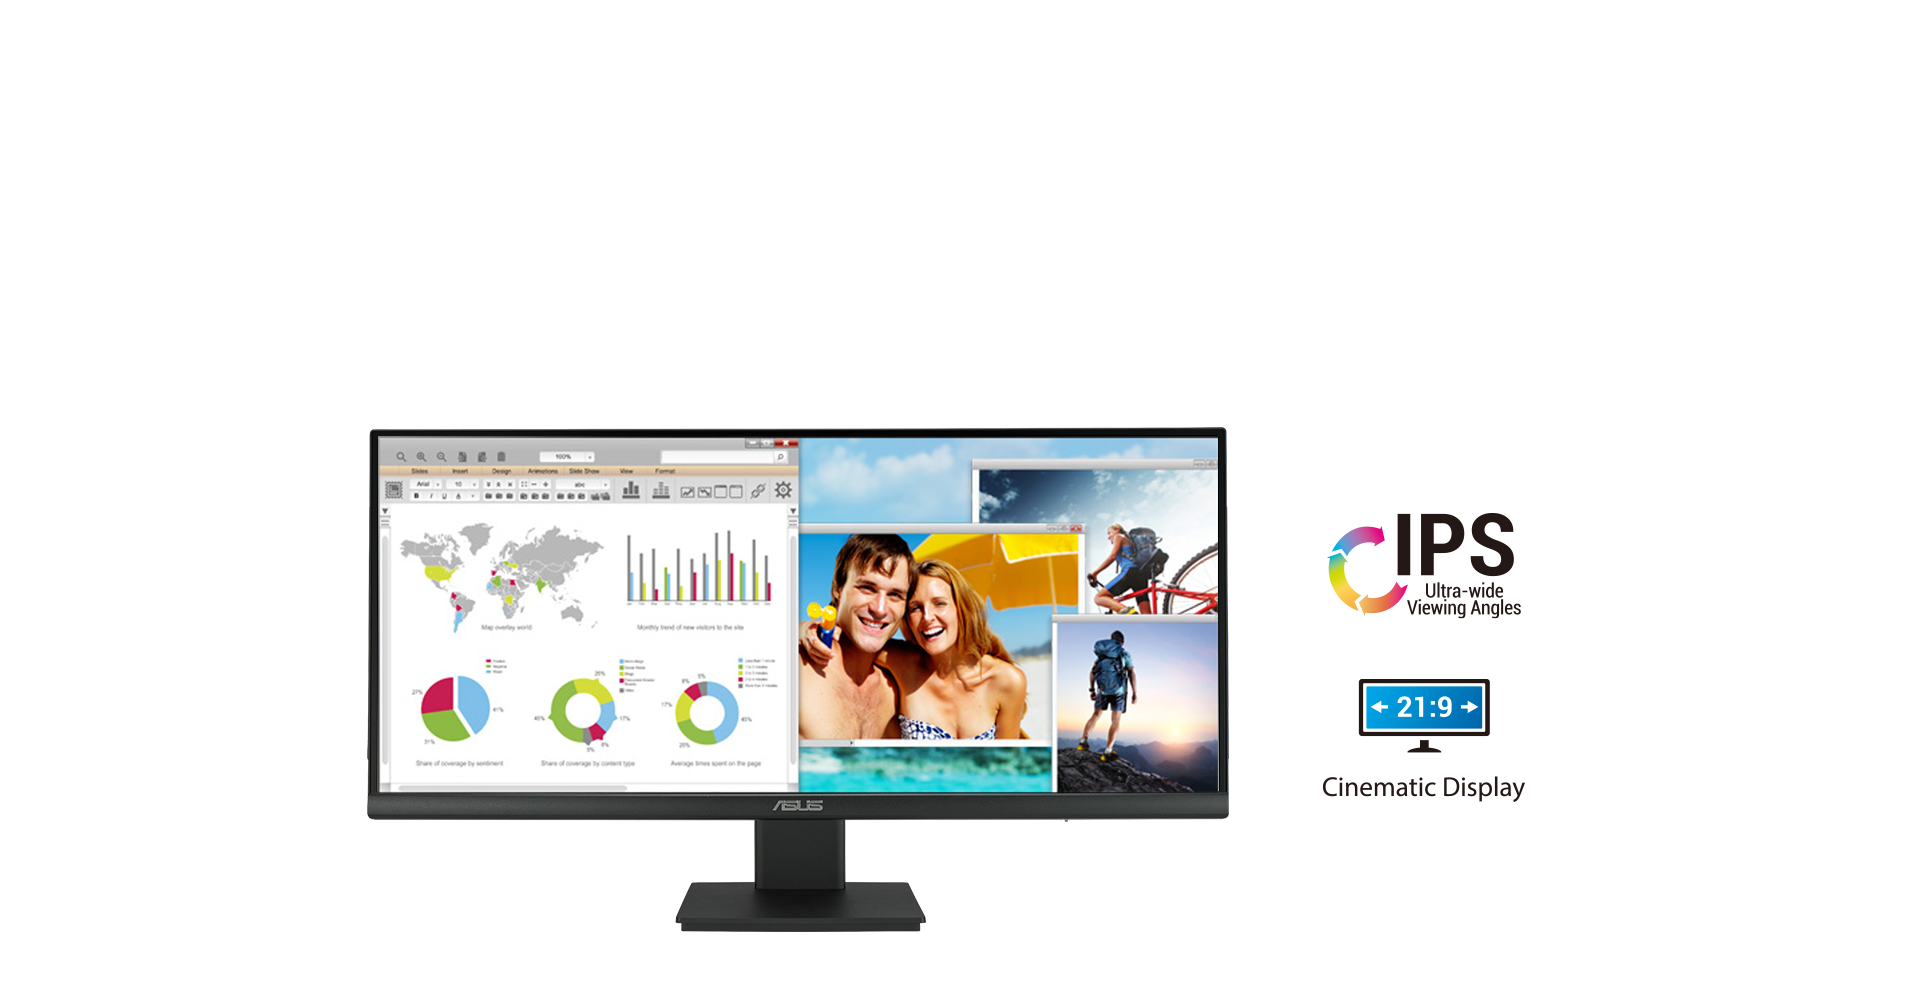 VP299CL Ultra-wide resolution enhance work and play